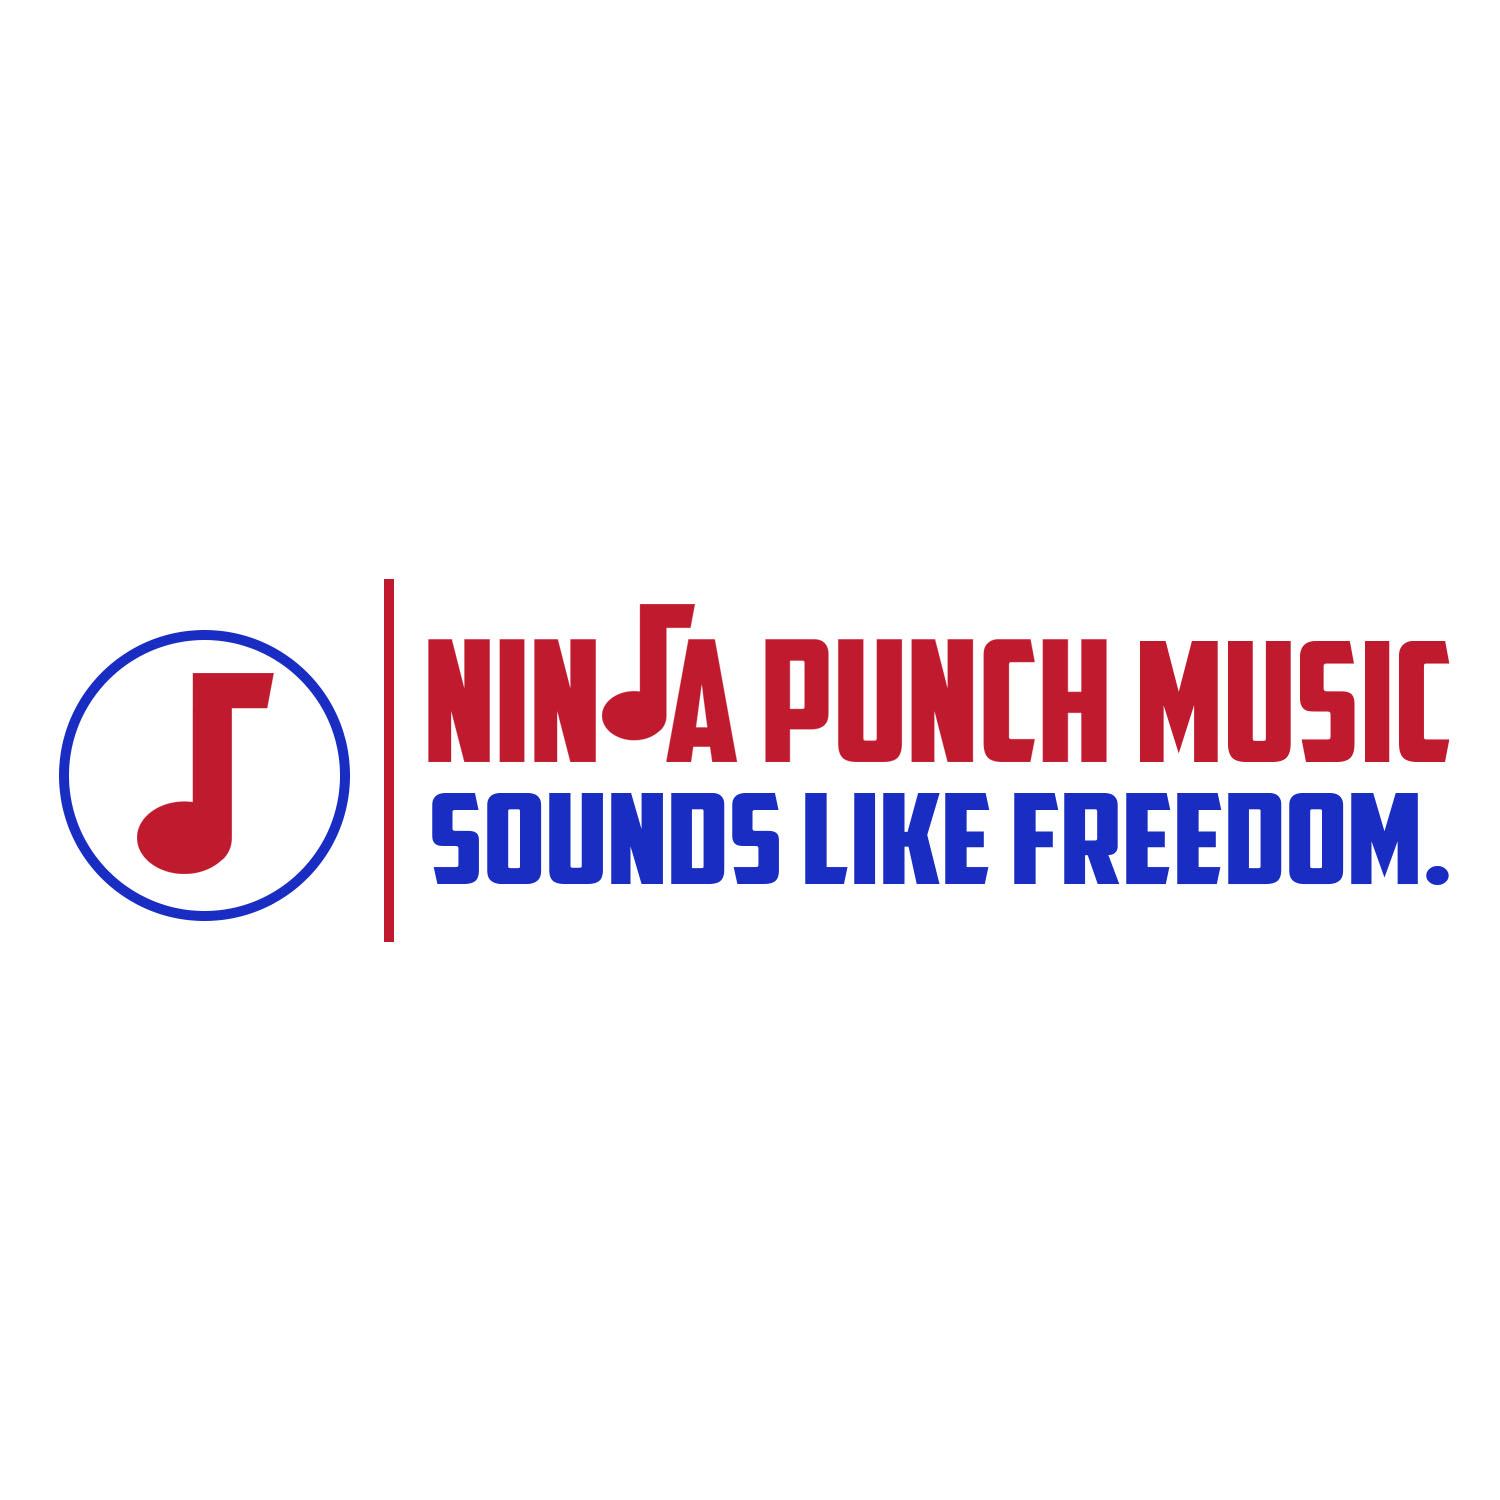 Ninja Punch Music